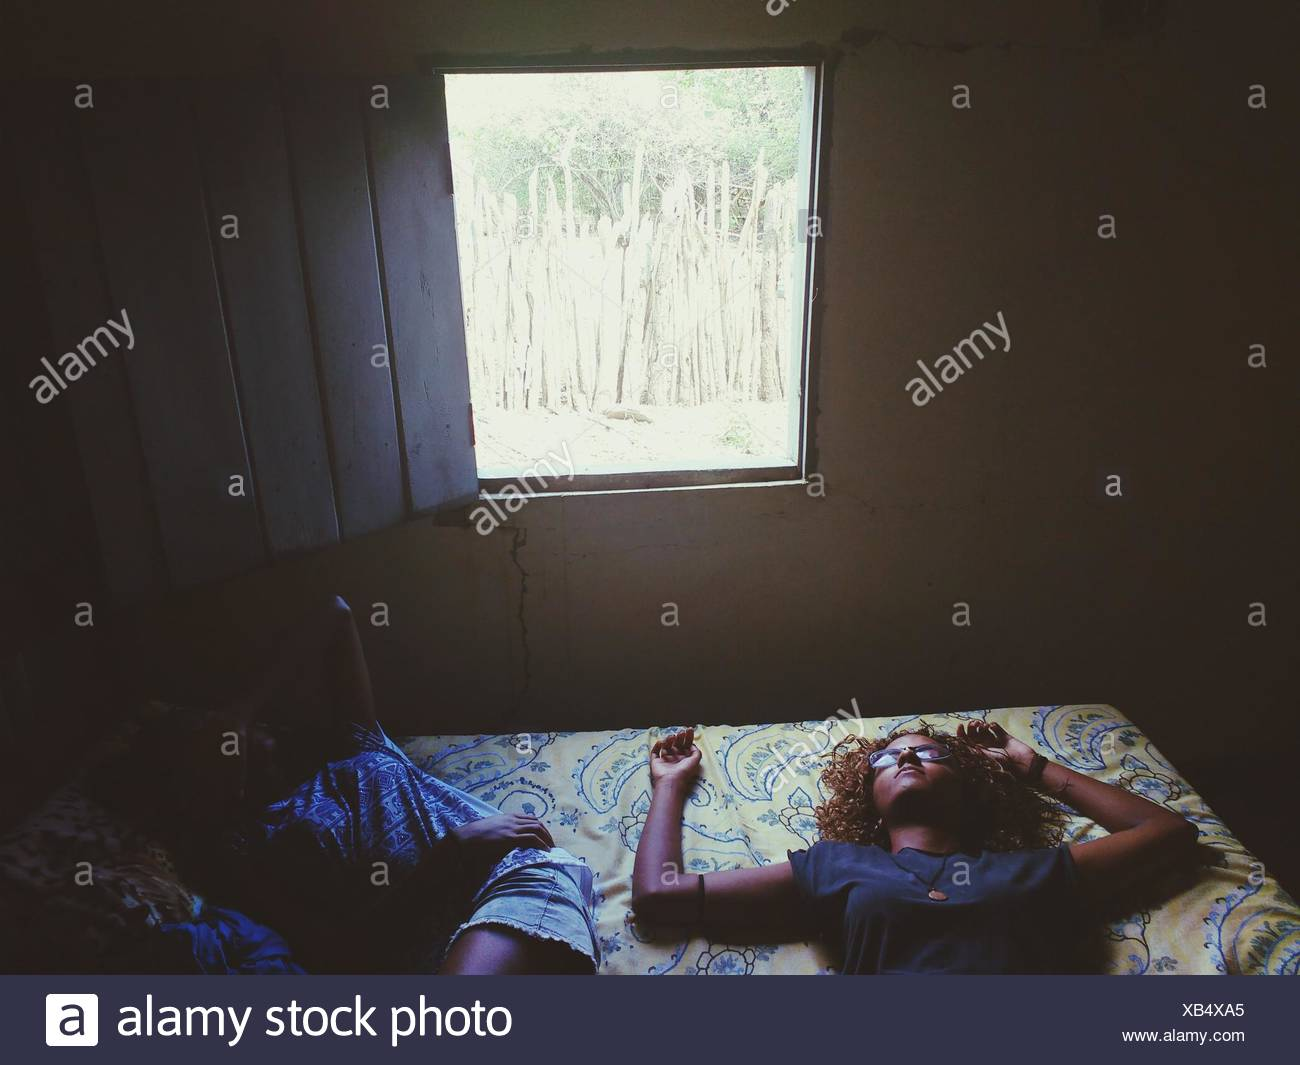 Friends Sleeping On Bed At Home - Stock Image